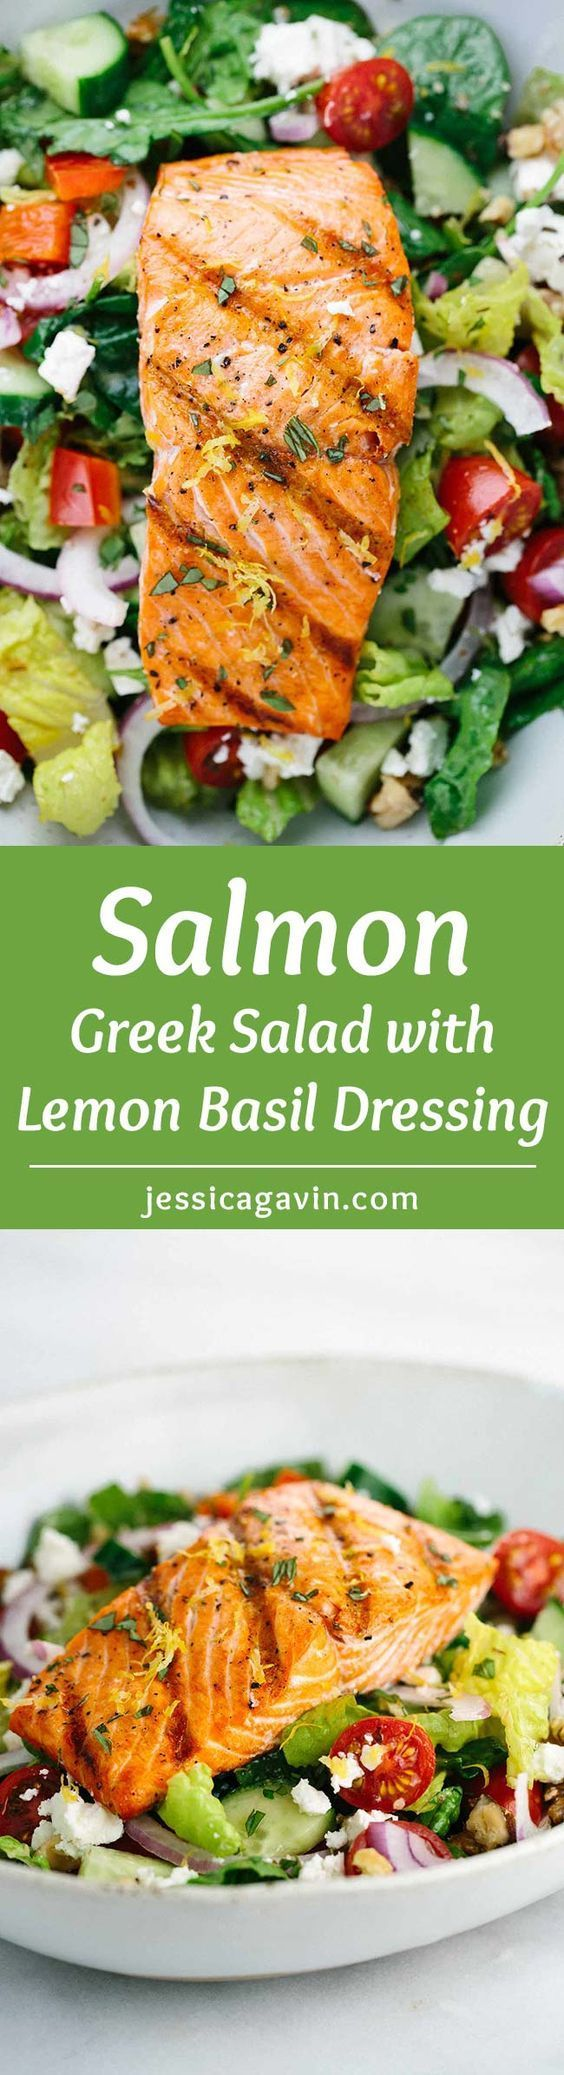 "Salmon Greek Salad with Lemon Basil Dressing - A light and healthy recipe that tastes amazing! Crisp vegetables are tossed in a tangy lemon basil dressing and topped with flaky salmon. | <a href="""" rel=""nofollow"" target=""_blank""></a>"